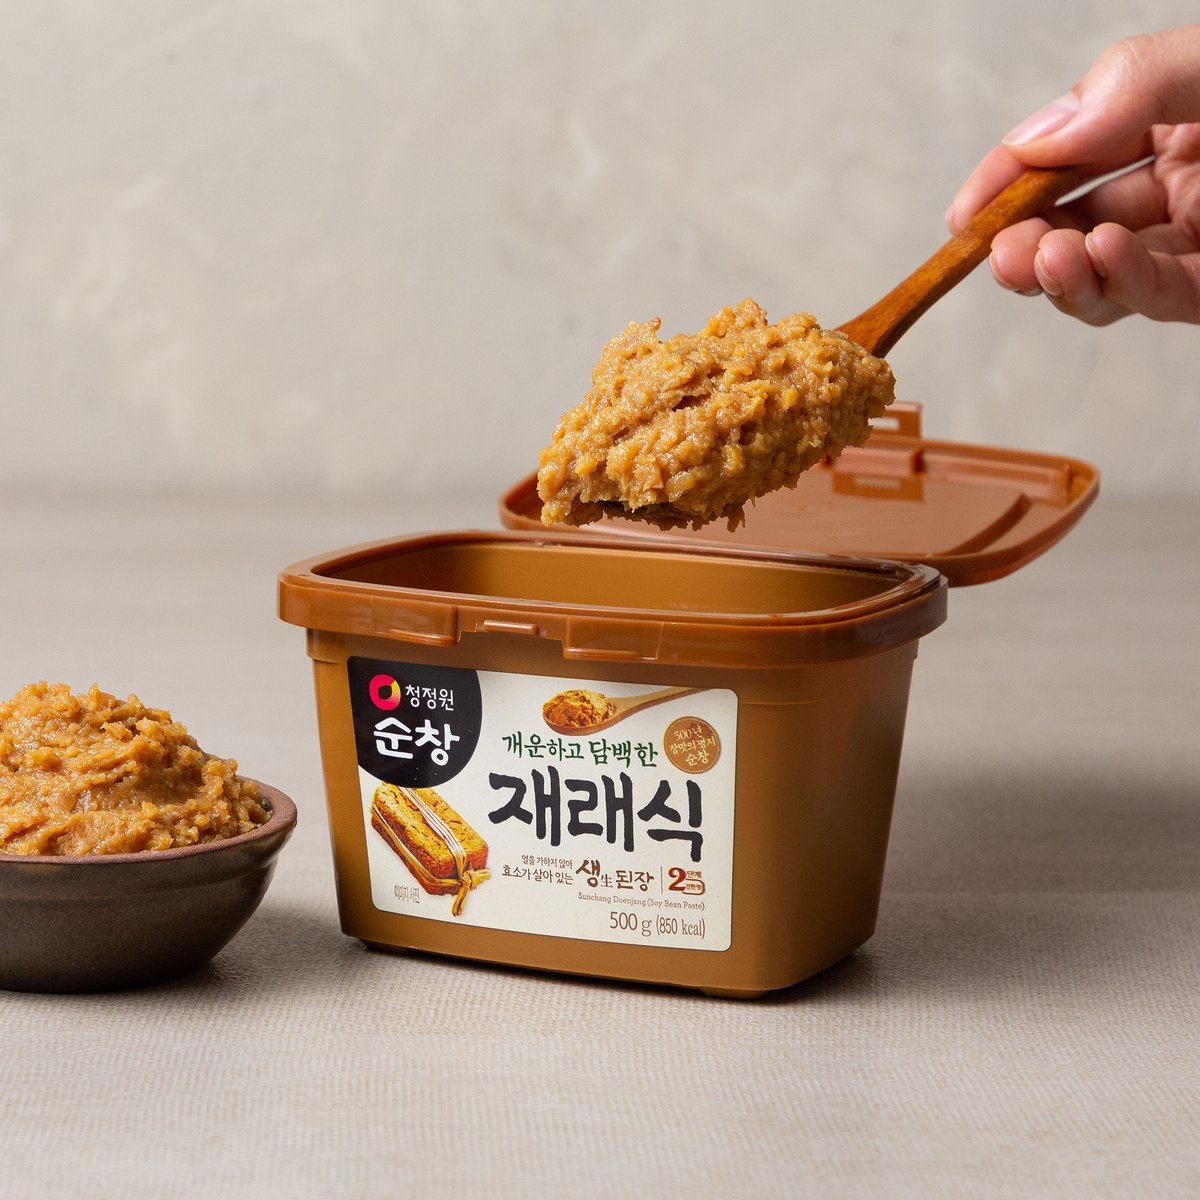 Korean Soybean Paste 재래식 생된장 (500g) | Chung Jung One